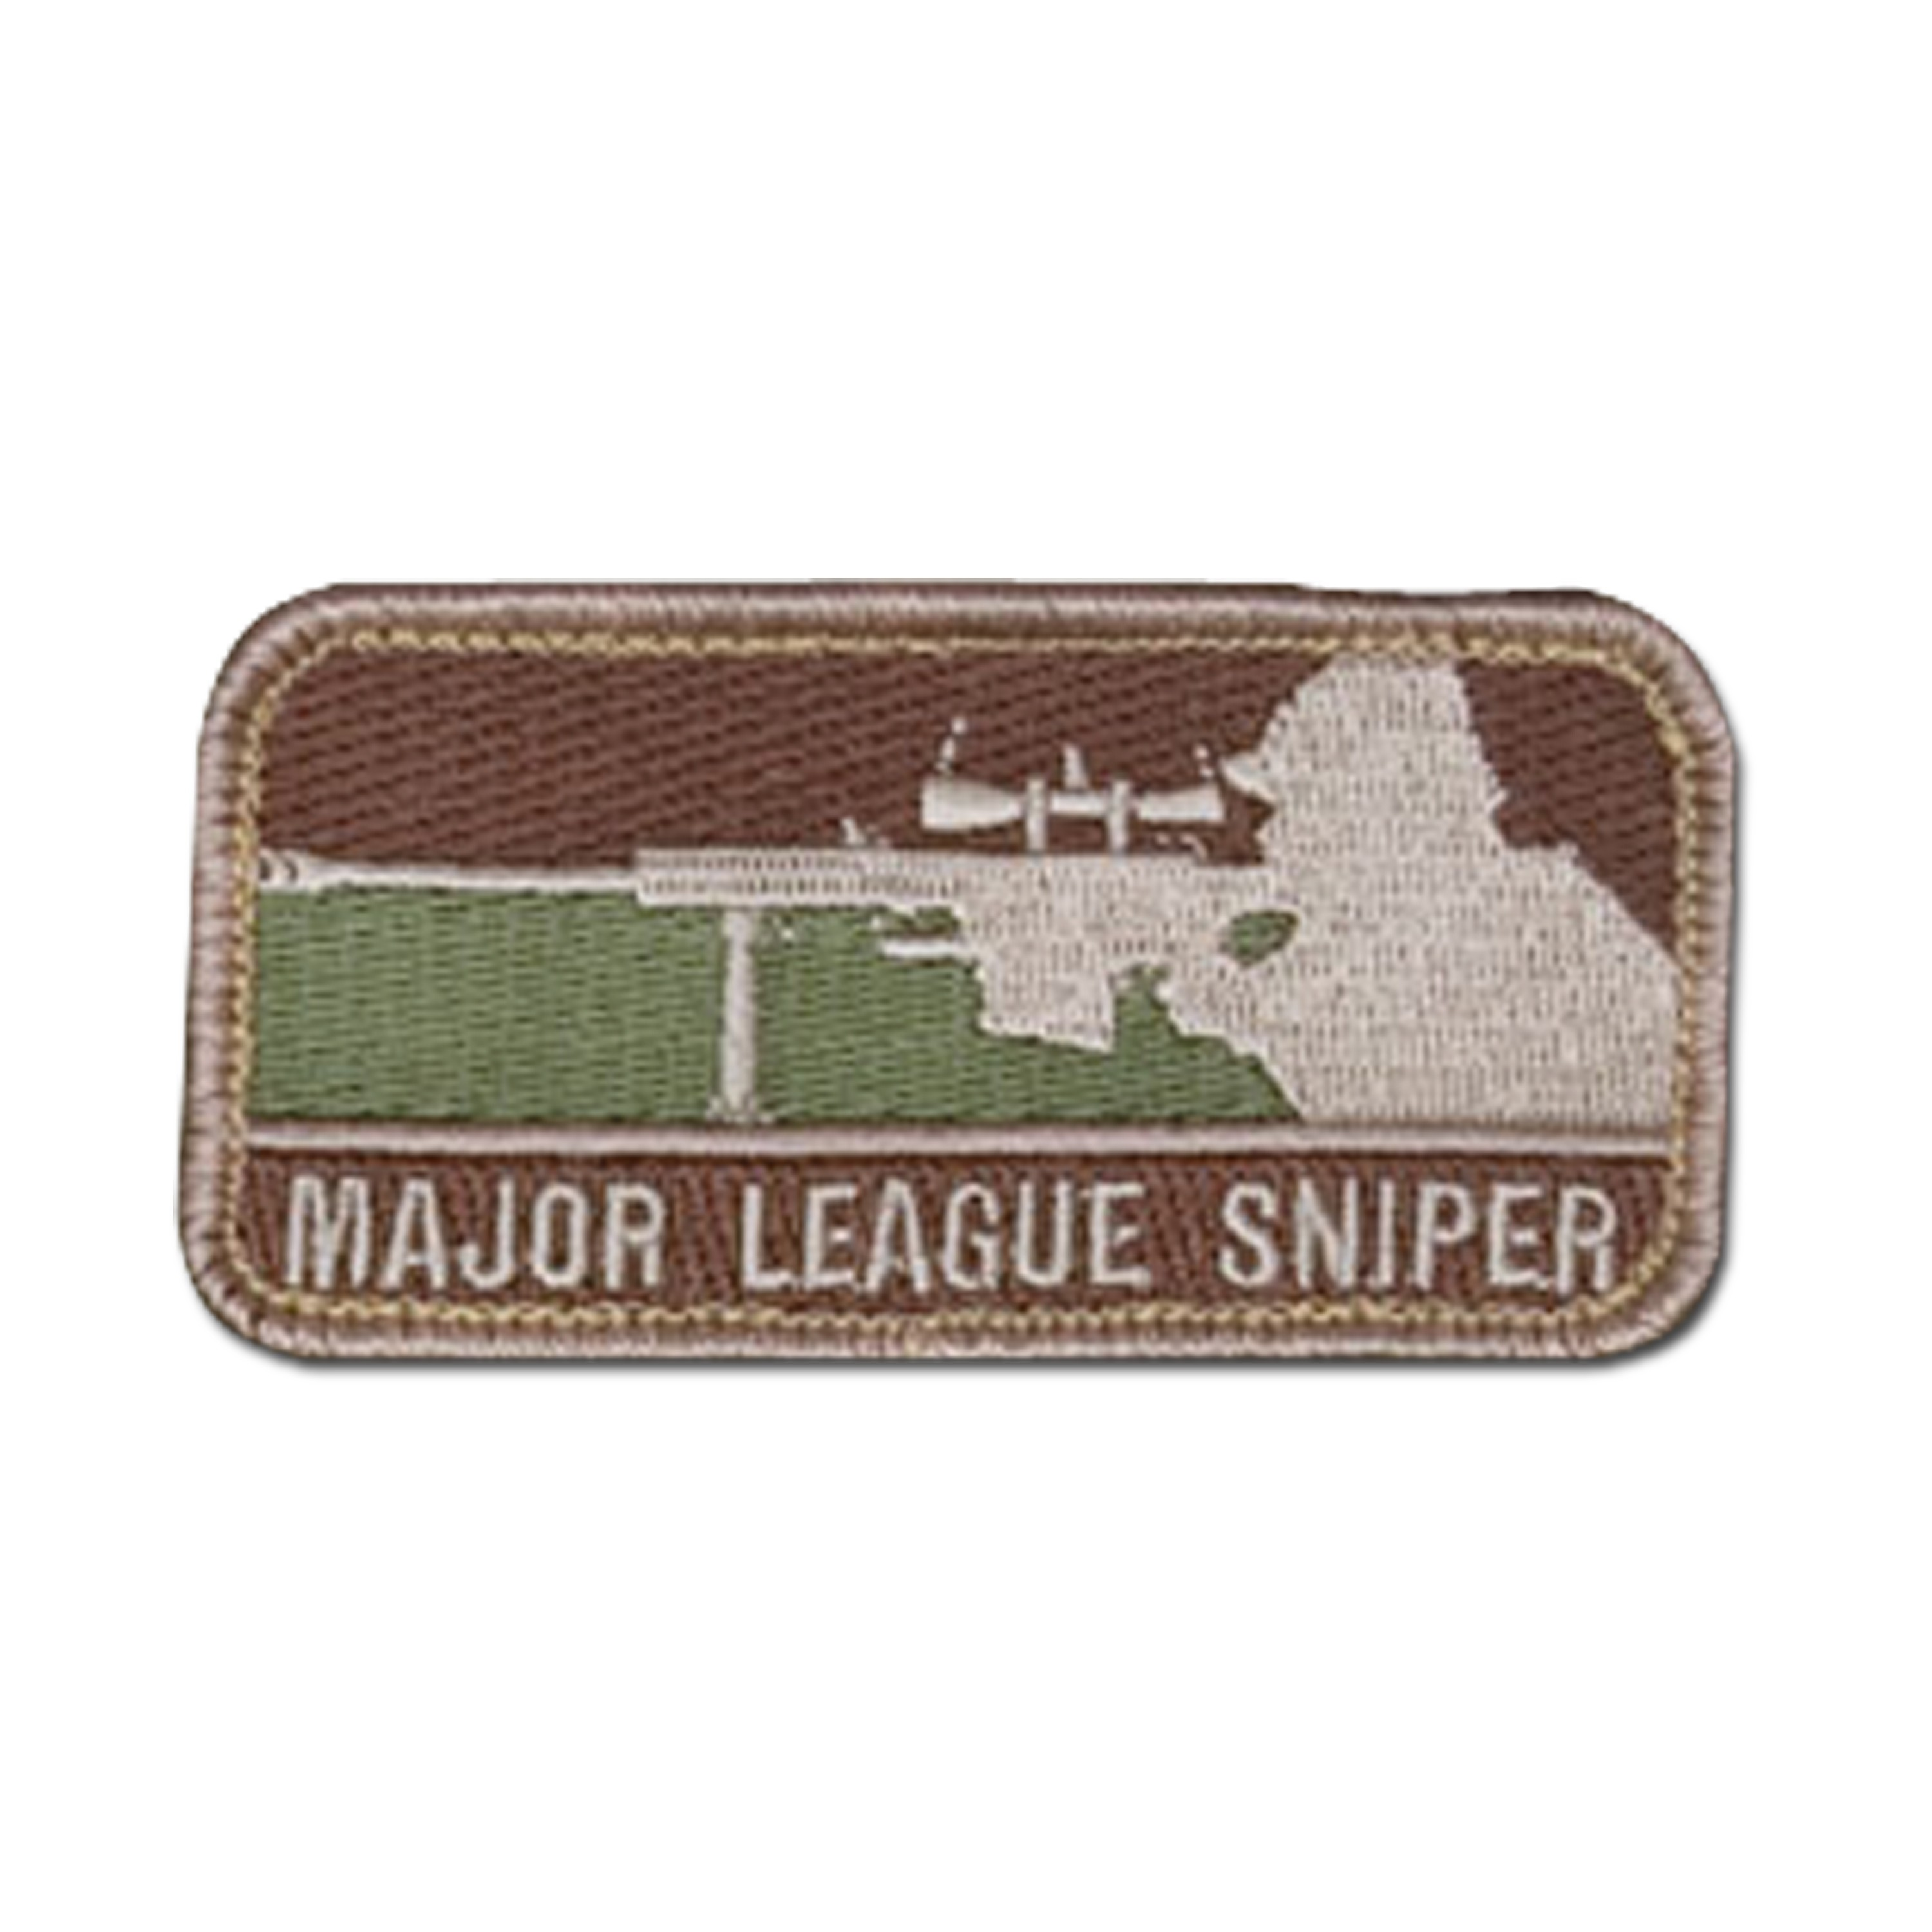 MilSpecMonkey Patch Major League Sniper arid